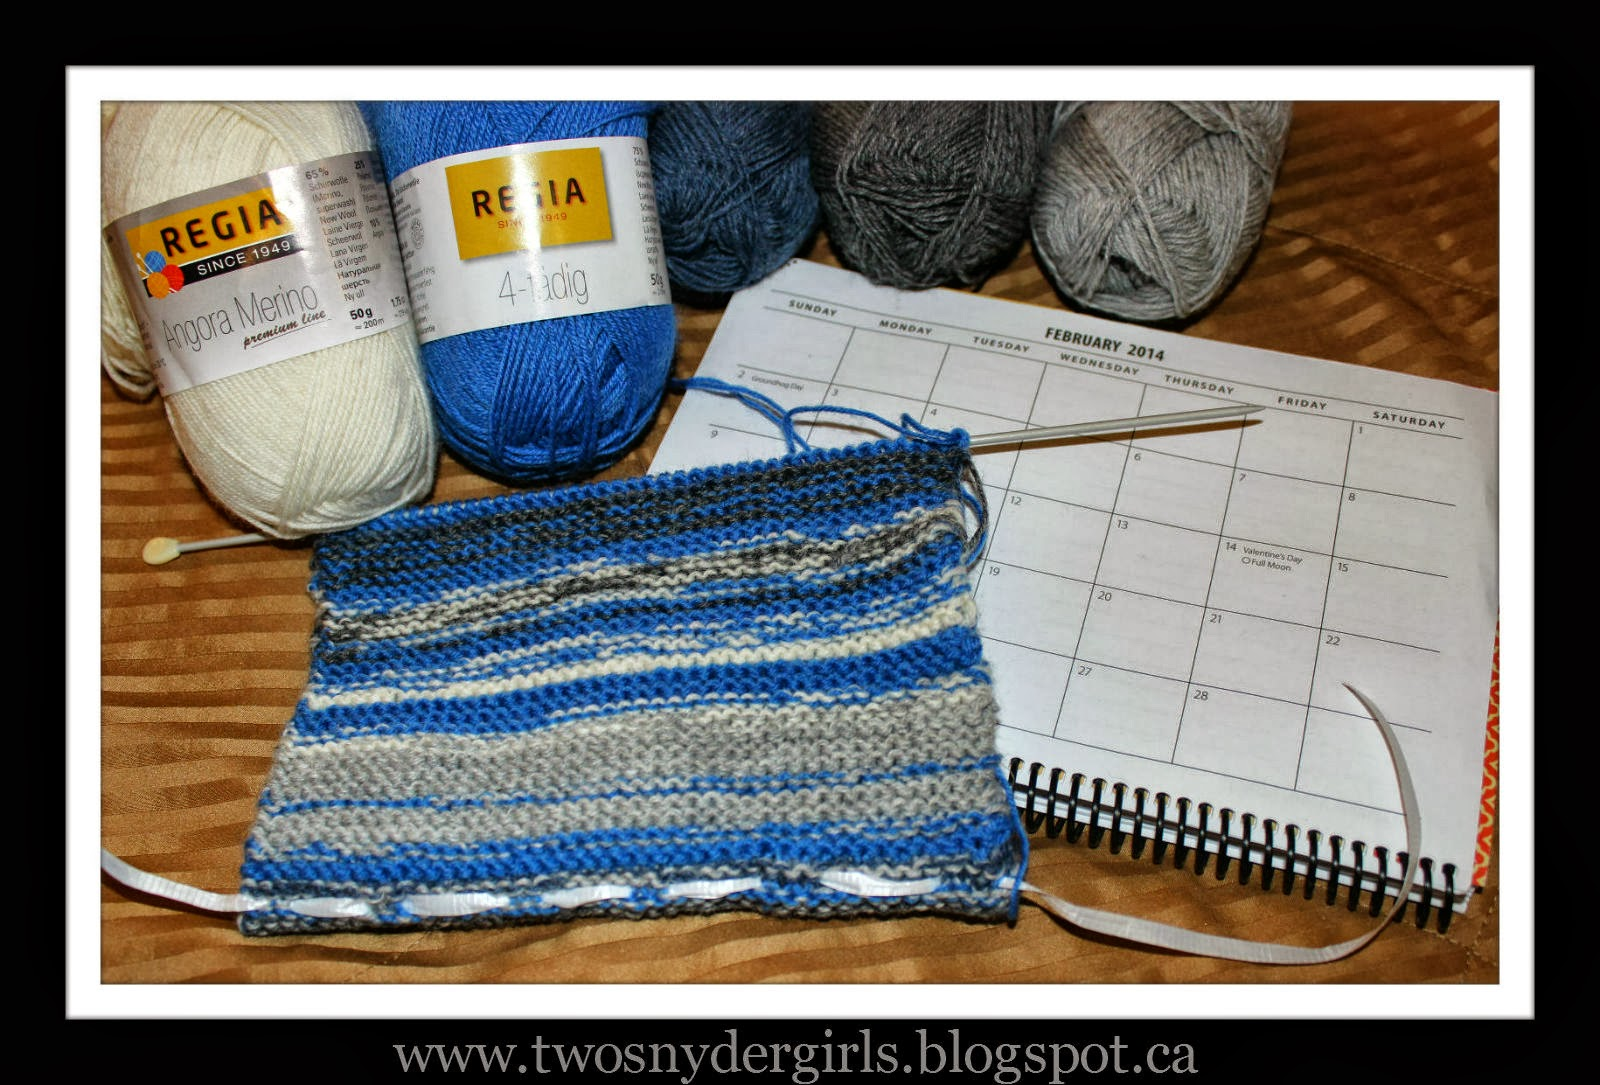 Knitting the February 2014 sky